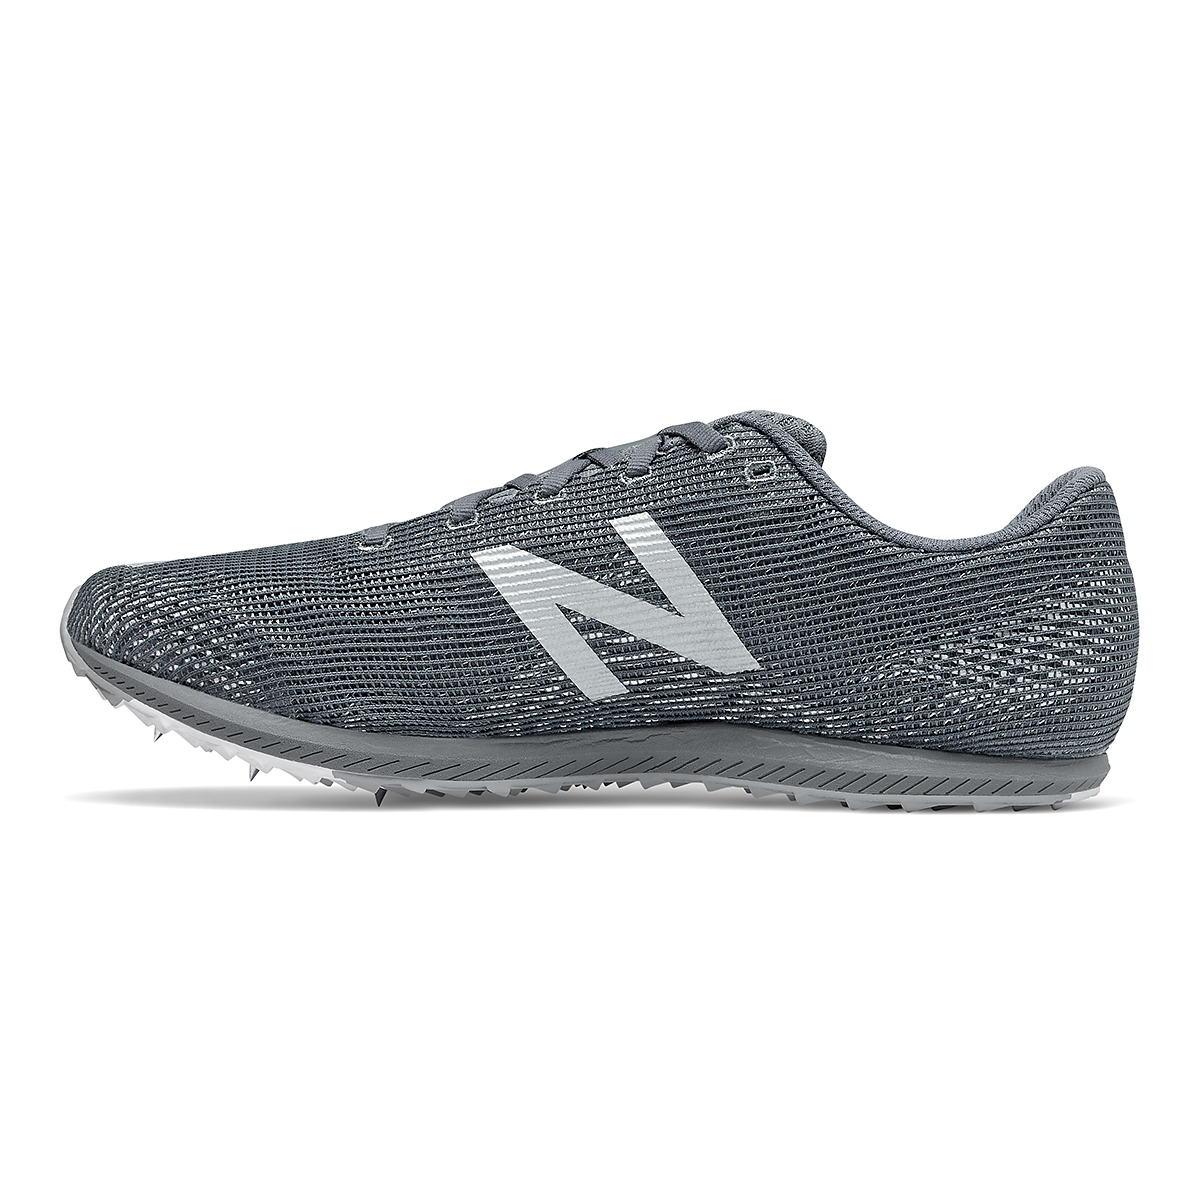 Men's New Balance XC Seven v3 Track Spikes - Color: Lead/Silver Metallic - Size: 4.5 - Width: Regular, Lead/Silver Metallic, large, image 2